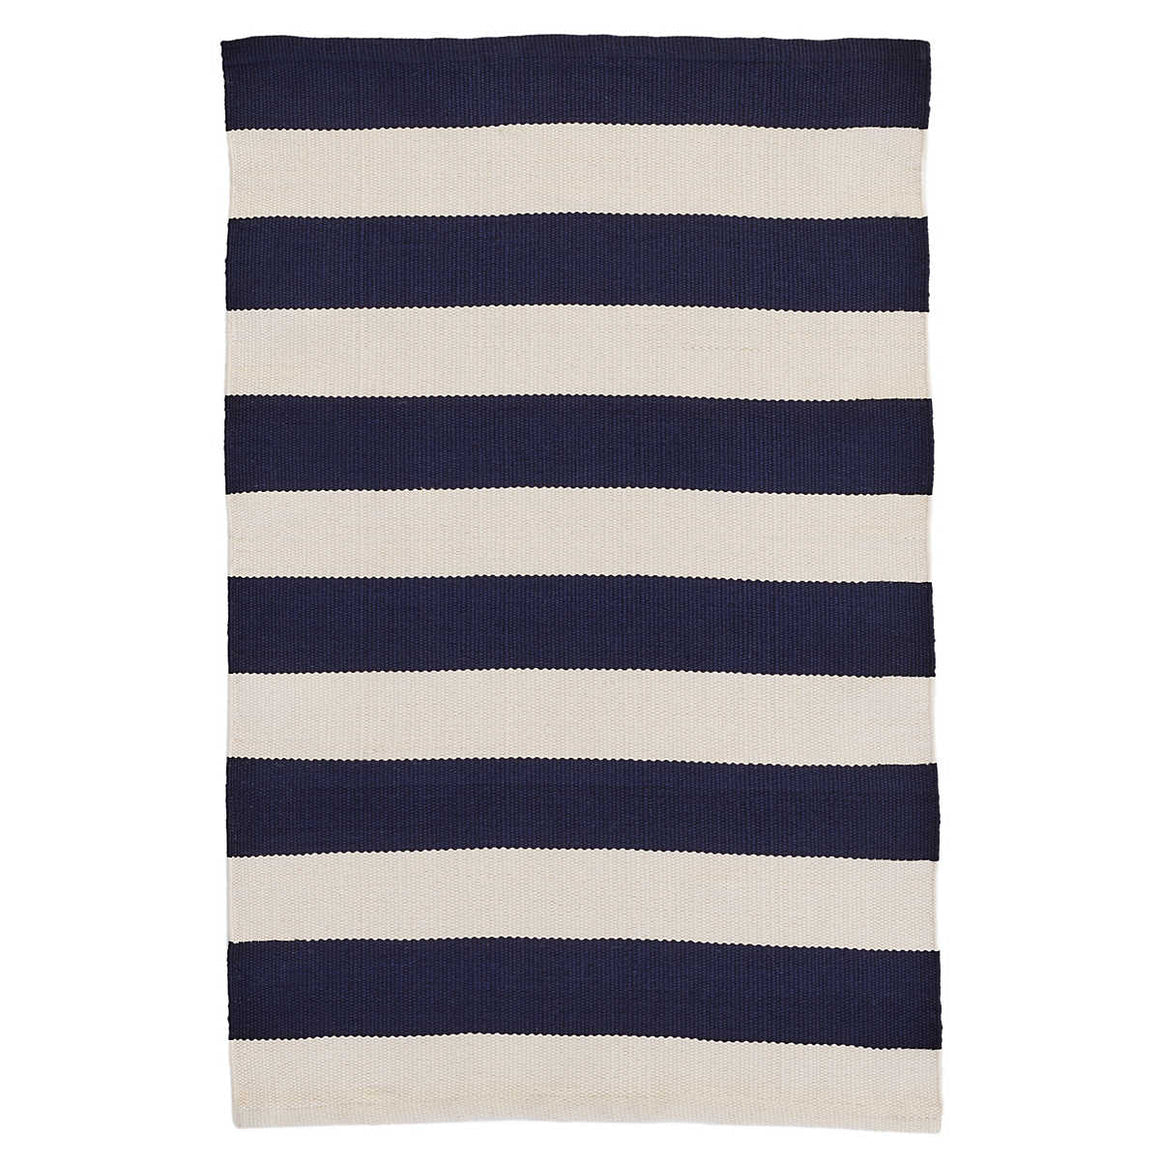 Catamaran Stripe Navy & Ivory  Indoor/Outdoor Rug